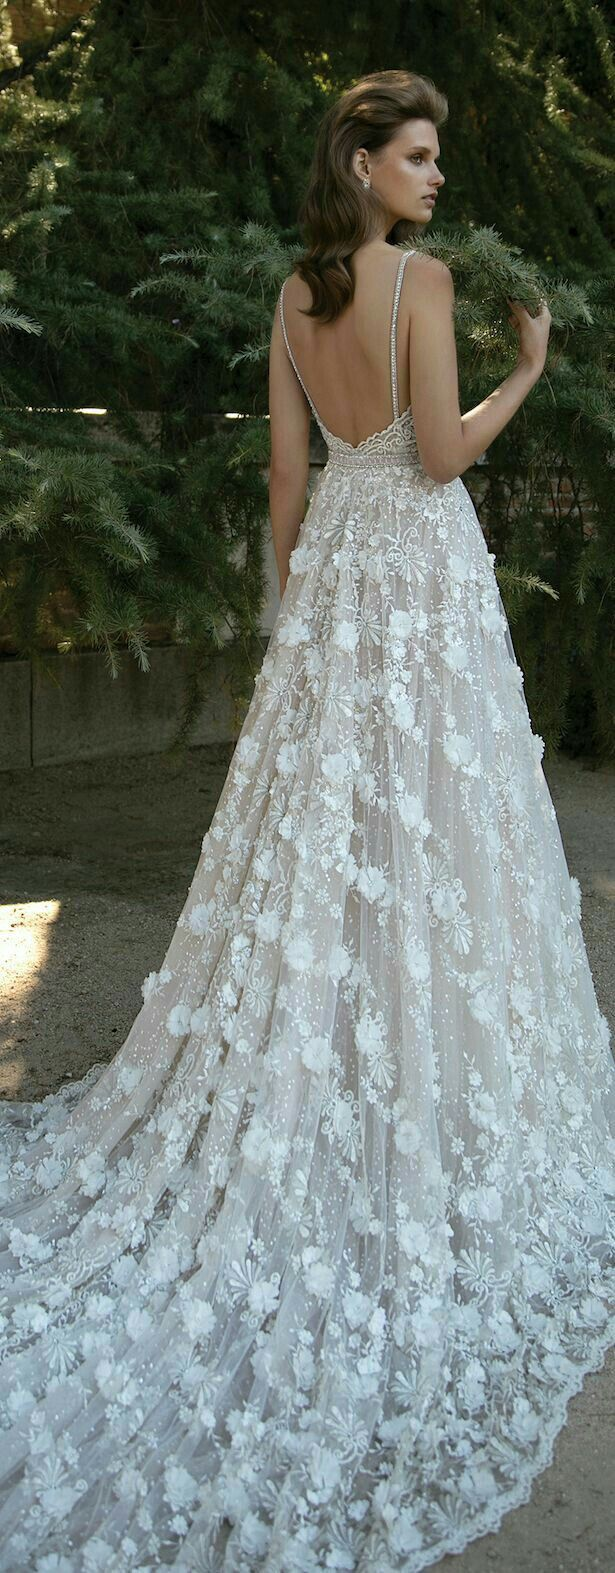 246 best vestidos images on Pinterest | Classy dress, Elegant ...